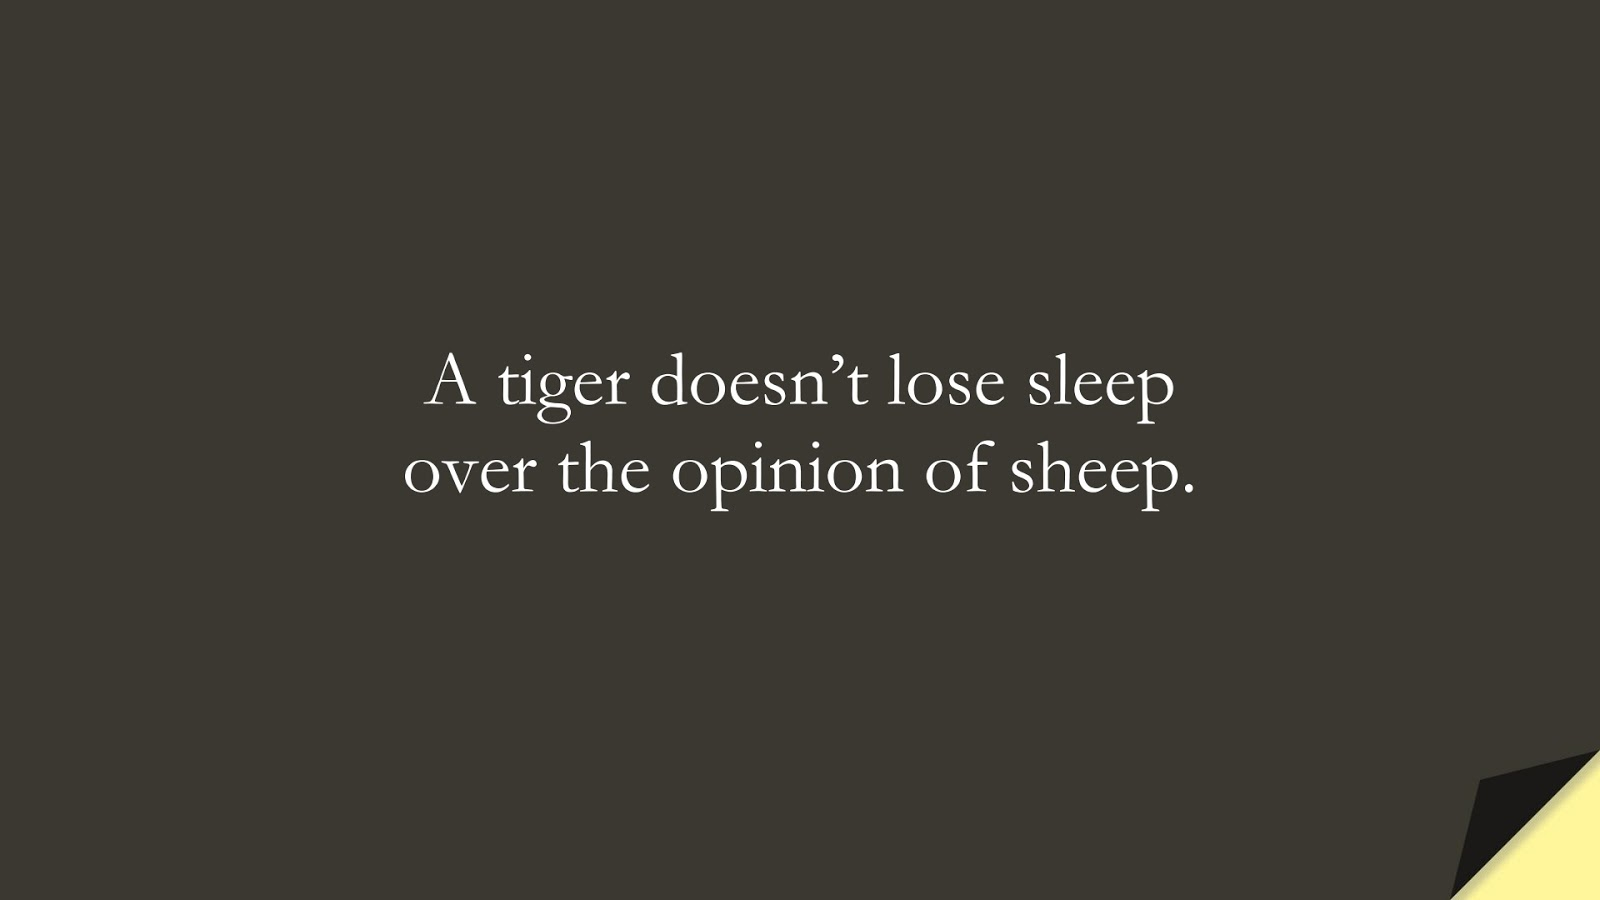 A tiger doesn't lose sleep over the opinion of sheep.FALSE